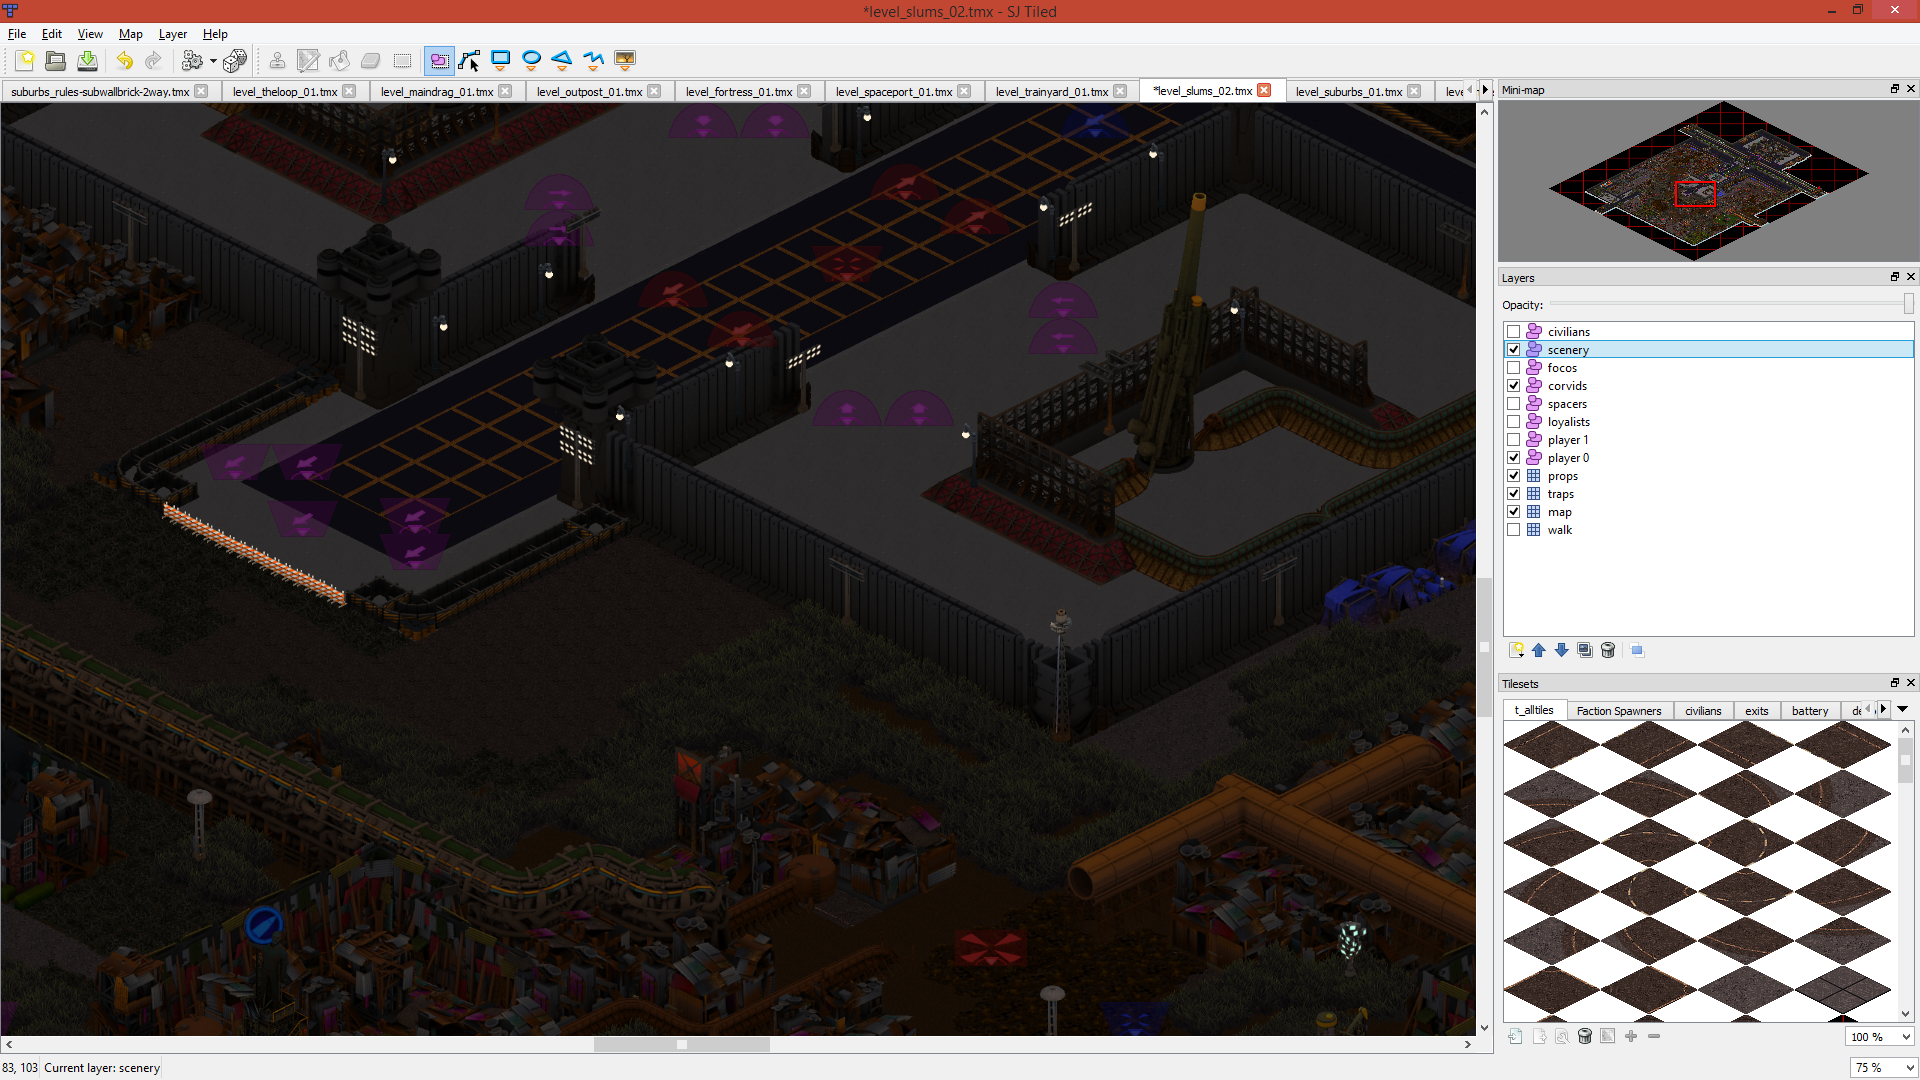 The Tiled map editor: